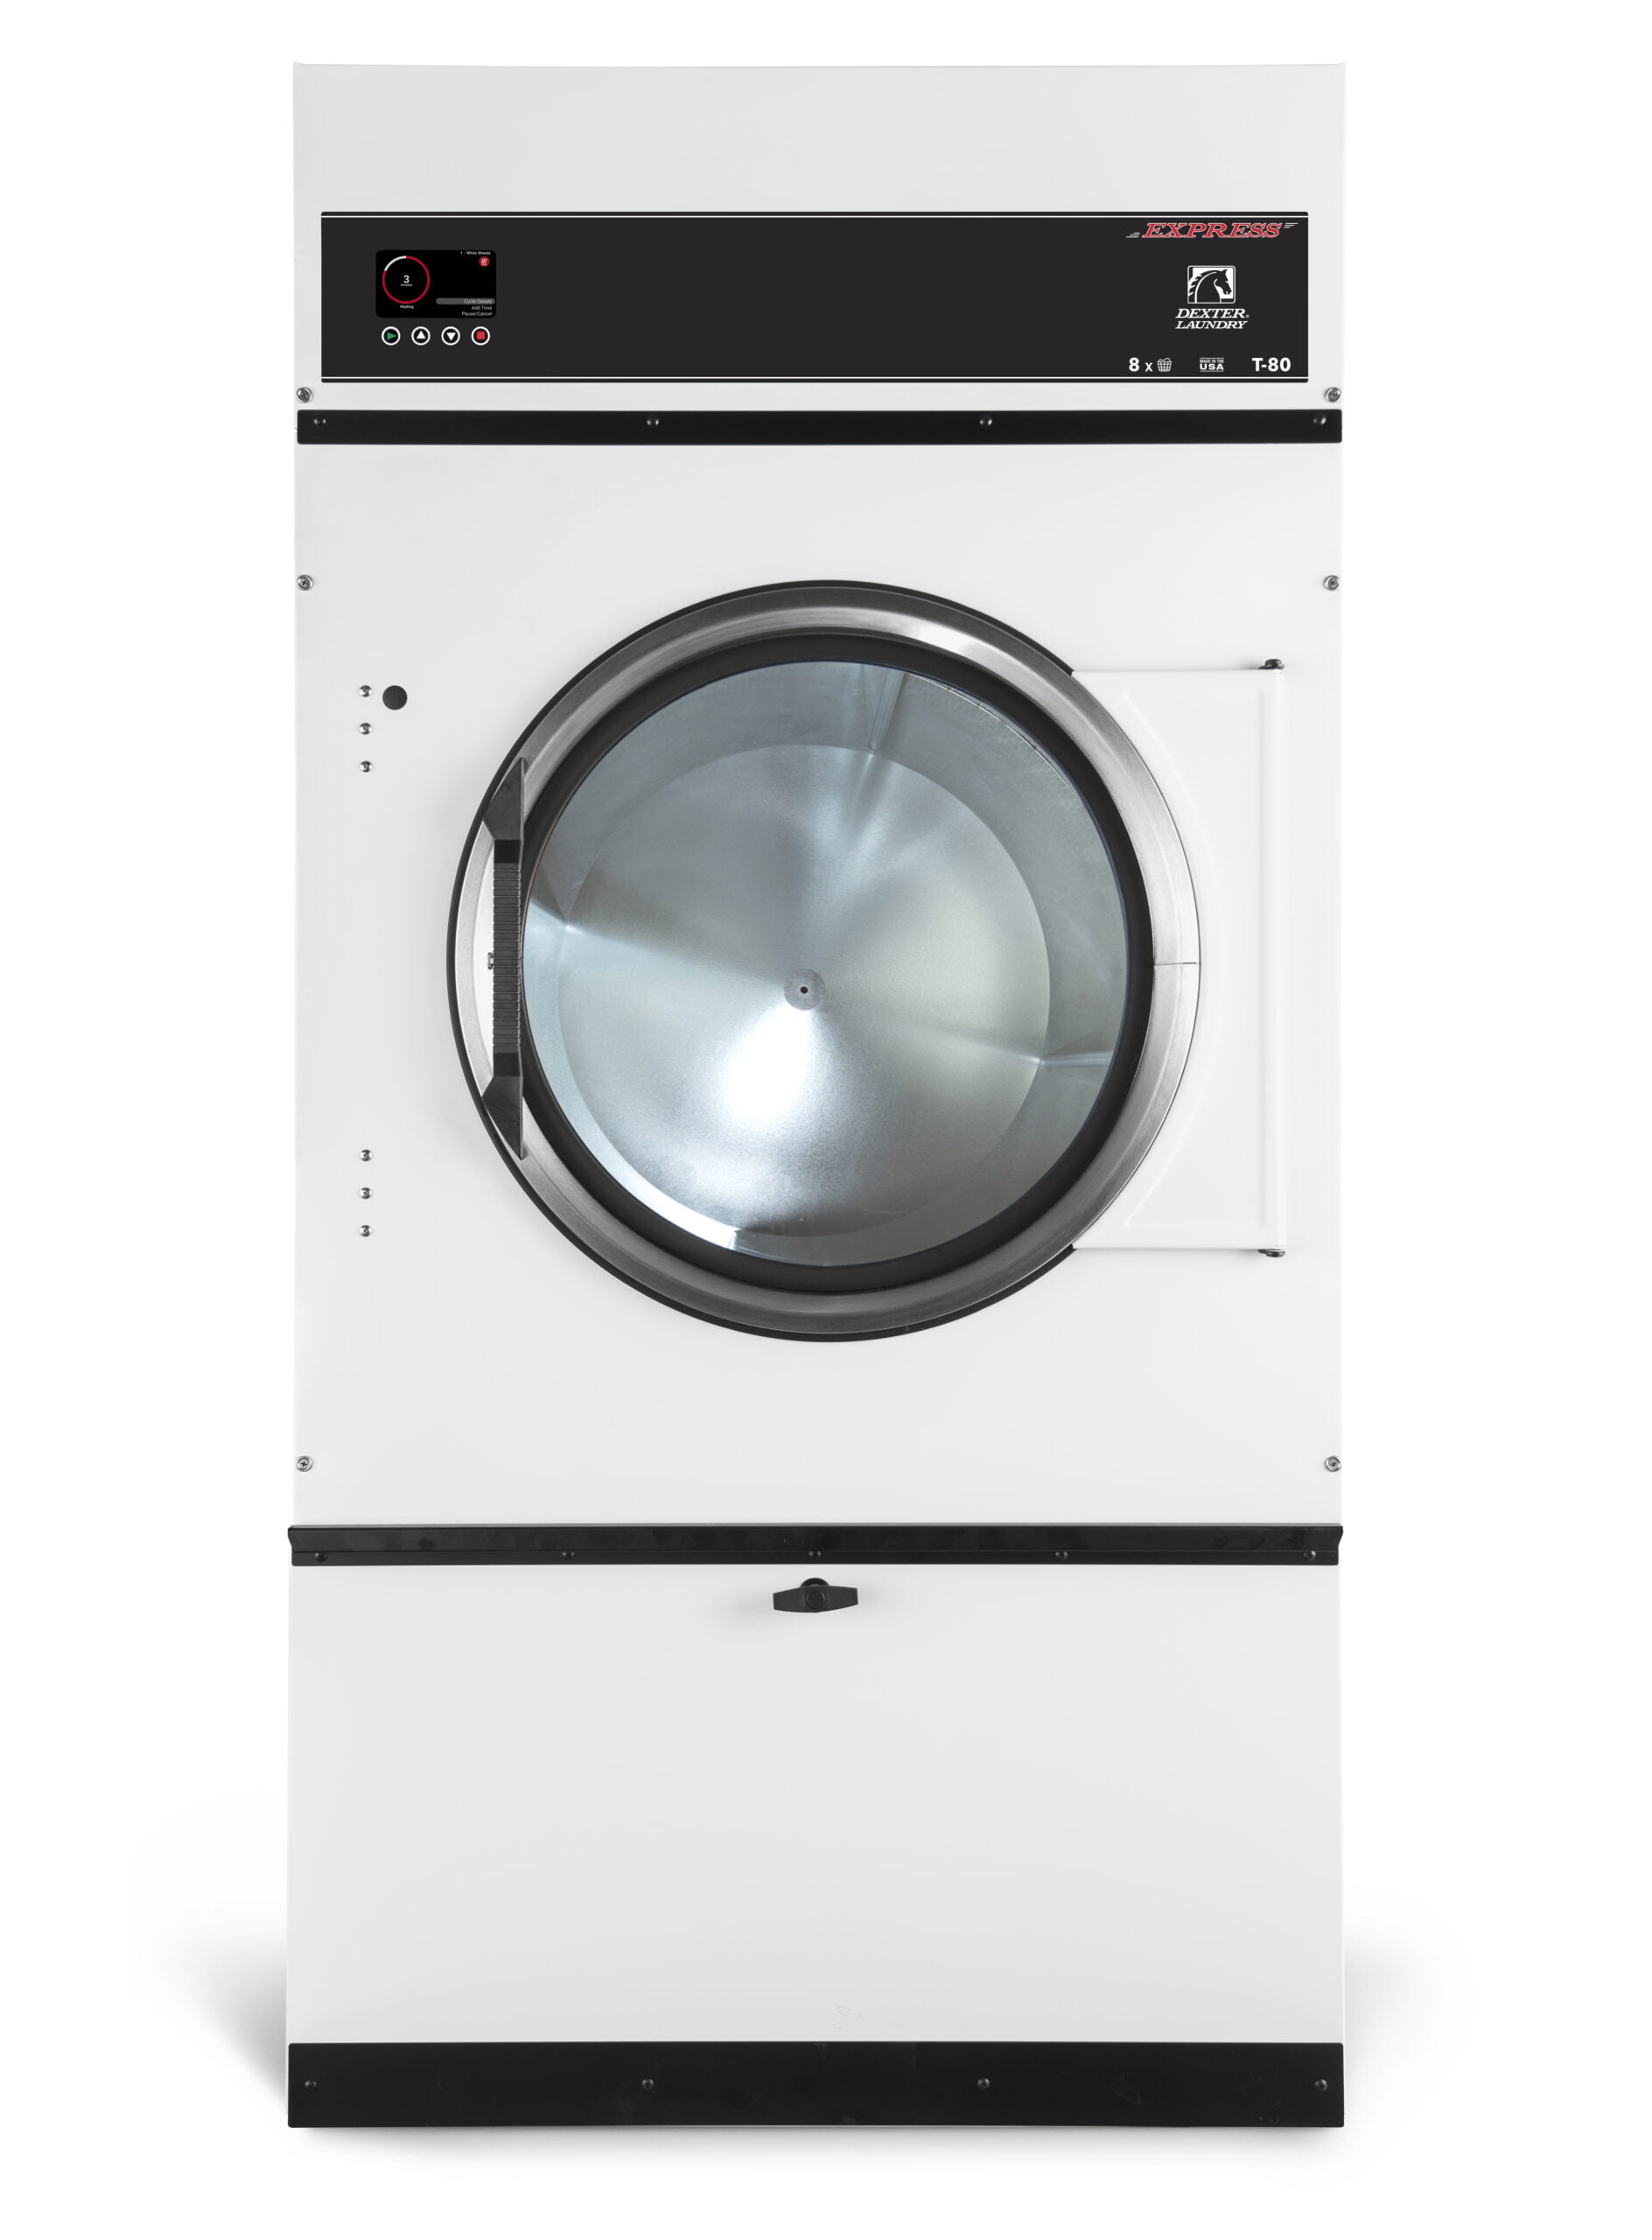 Dexter T-80 O series Product Image